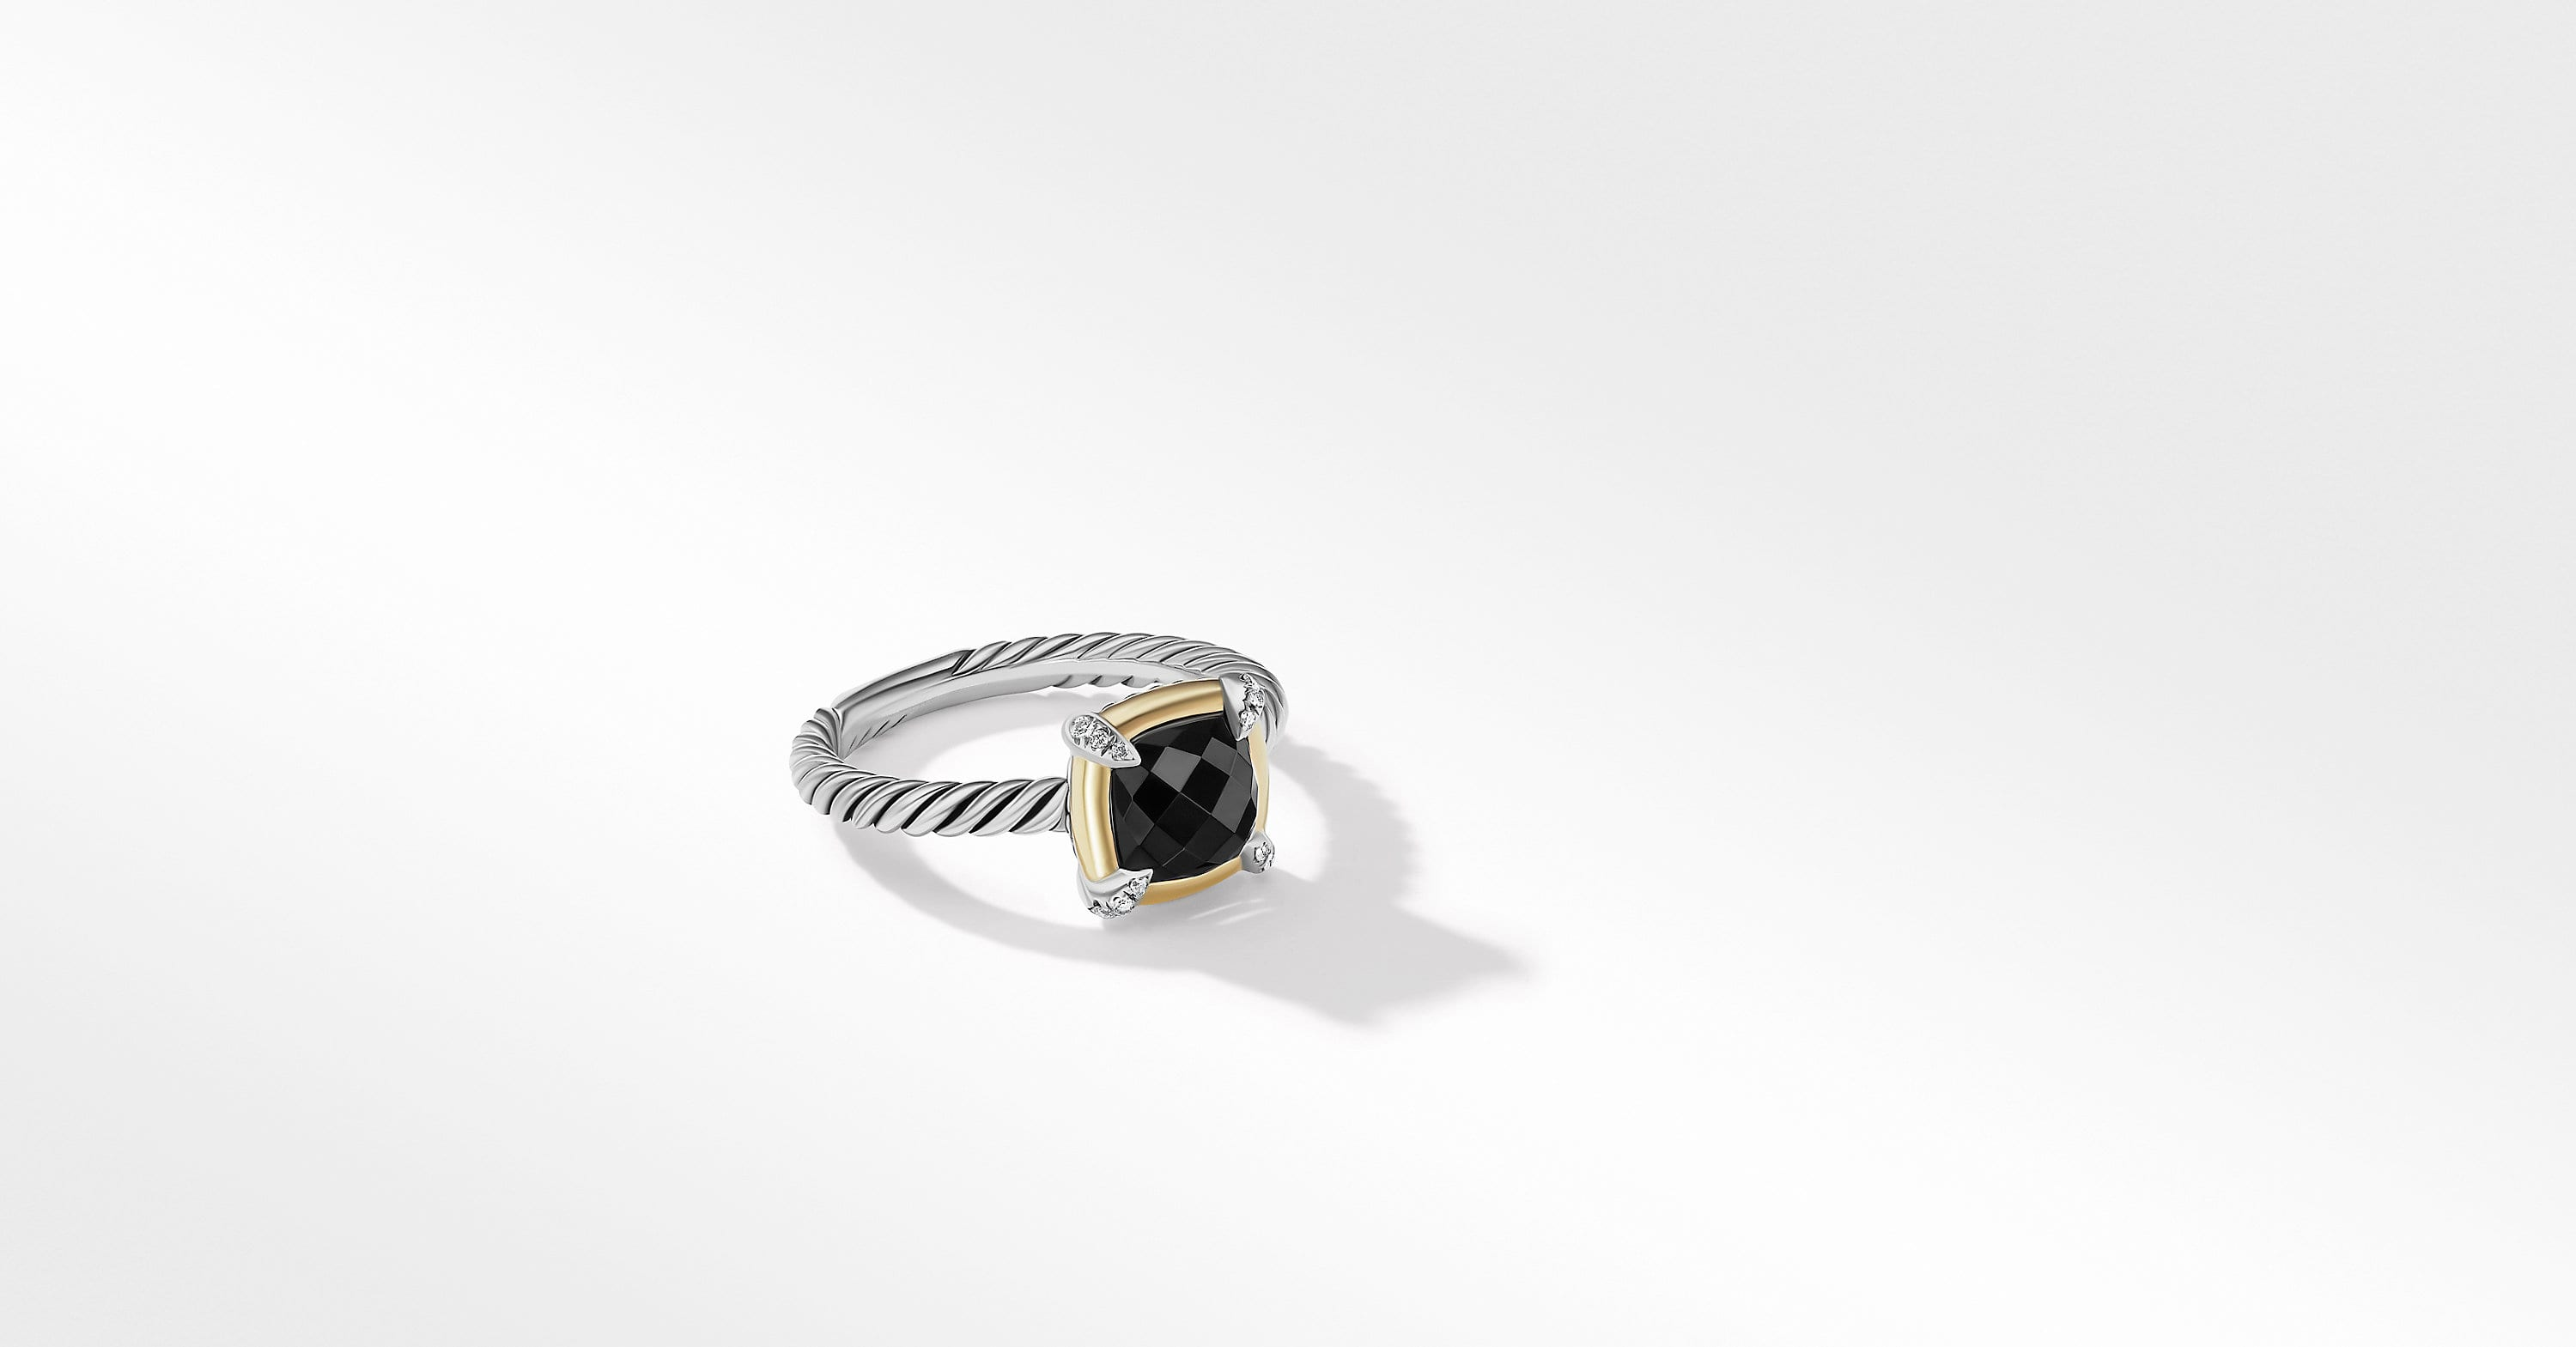 Petite Chatelaine Ring with 18K Yellow Gold Bezel and Diamonds, 10mm